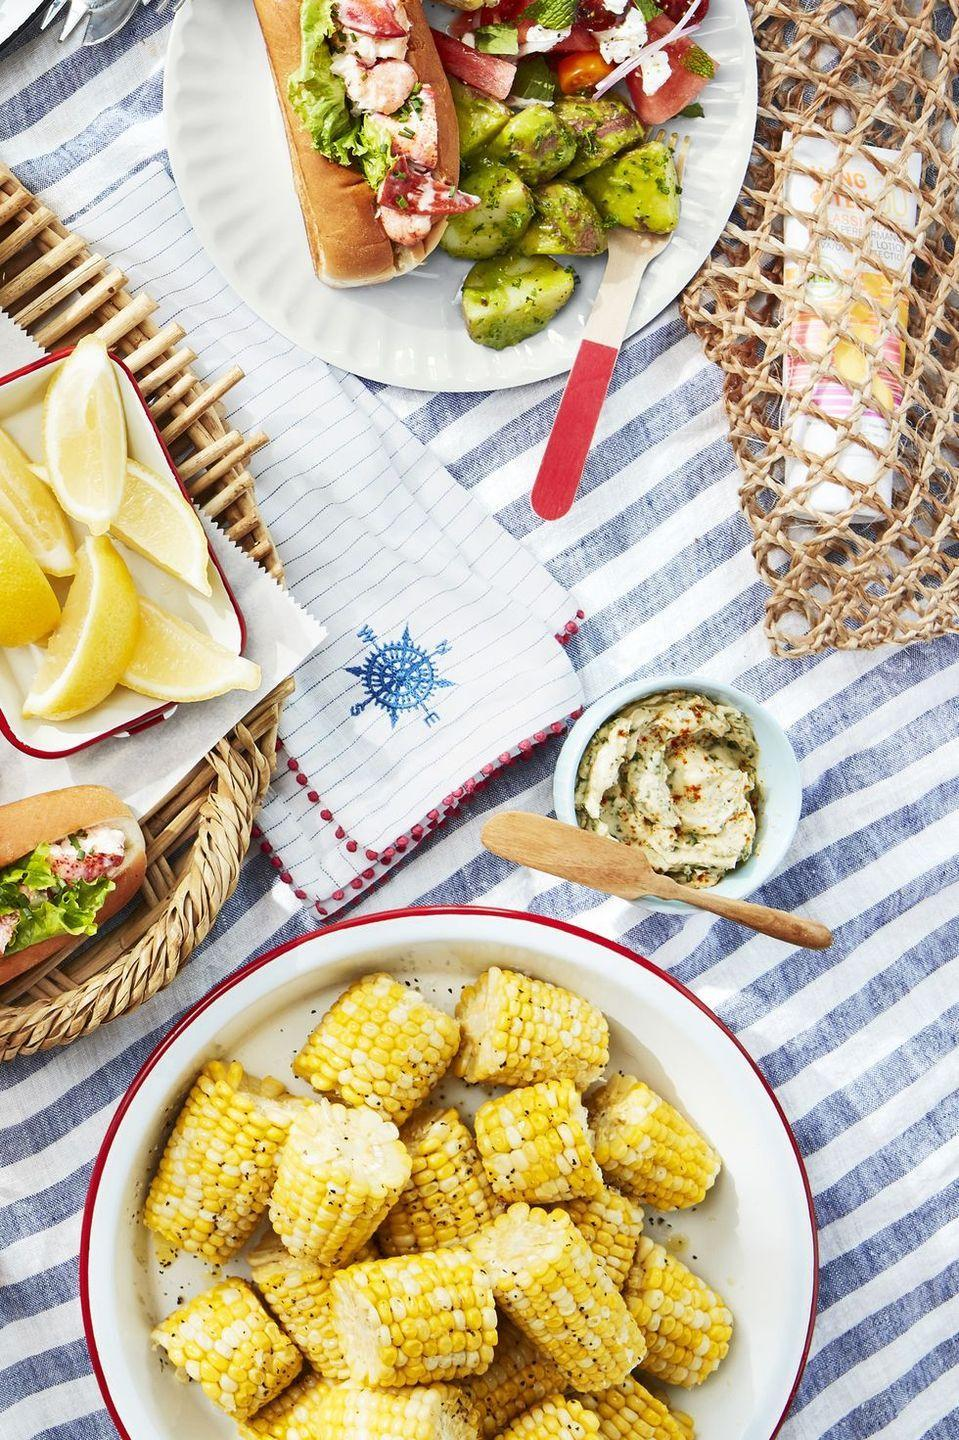 """<p>Bite-size cobettes are the ultimate summer barbecue side.</p><p><strong><a href=""""https://www.countryliving.com/food-drinks/a27546953/corn-cobettes-with-basil-butter-recipe/"""" rel=""""nofollow noopener"""" target=""""_blank"""" data-ylk=""""slk:Get the recipe"""" class=""""link rapid-noclick-resp"""">Get the recipe</a>.</strong><br></p>"""